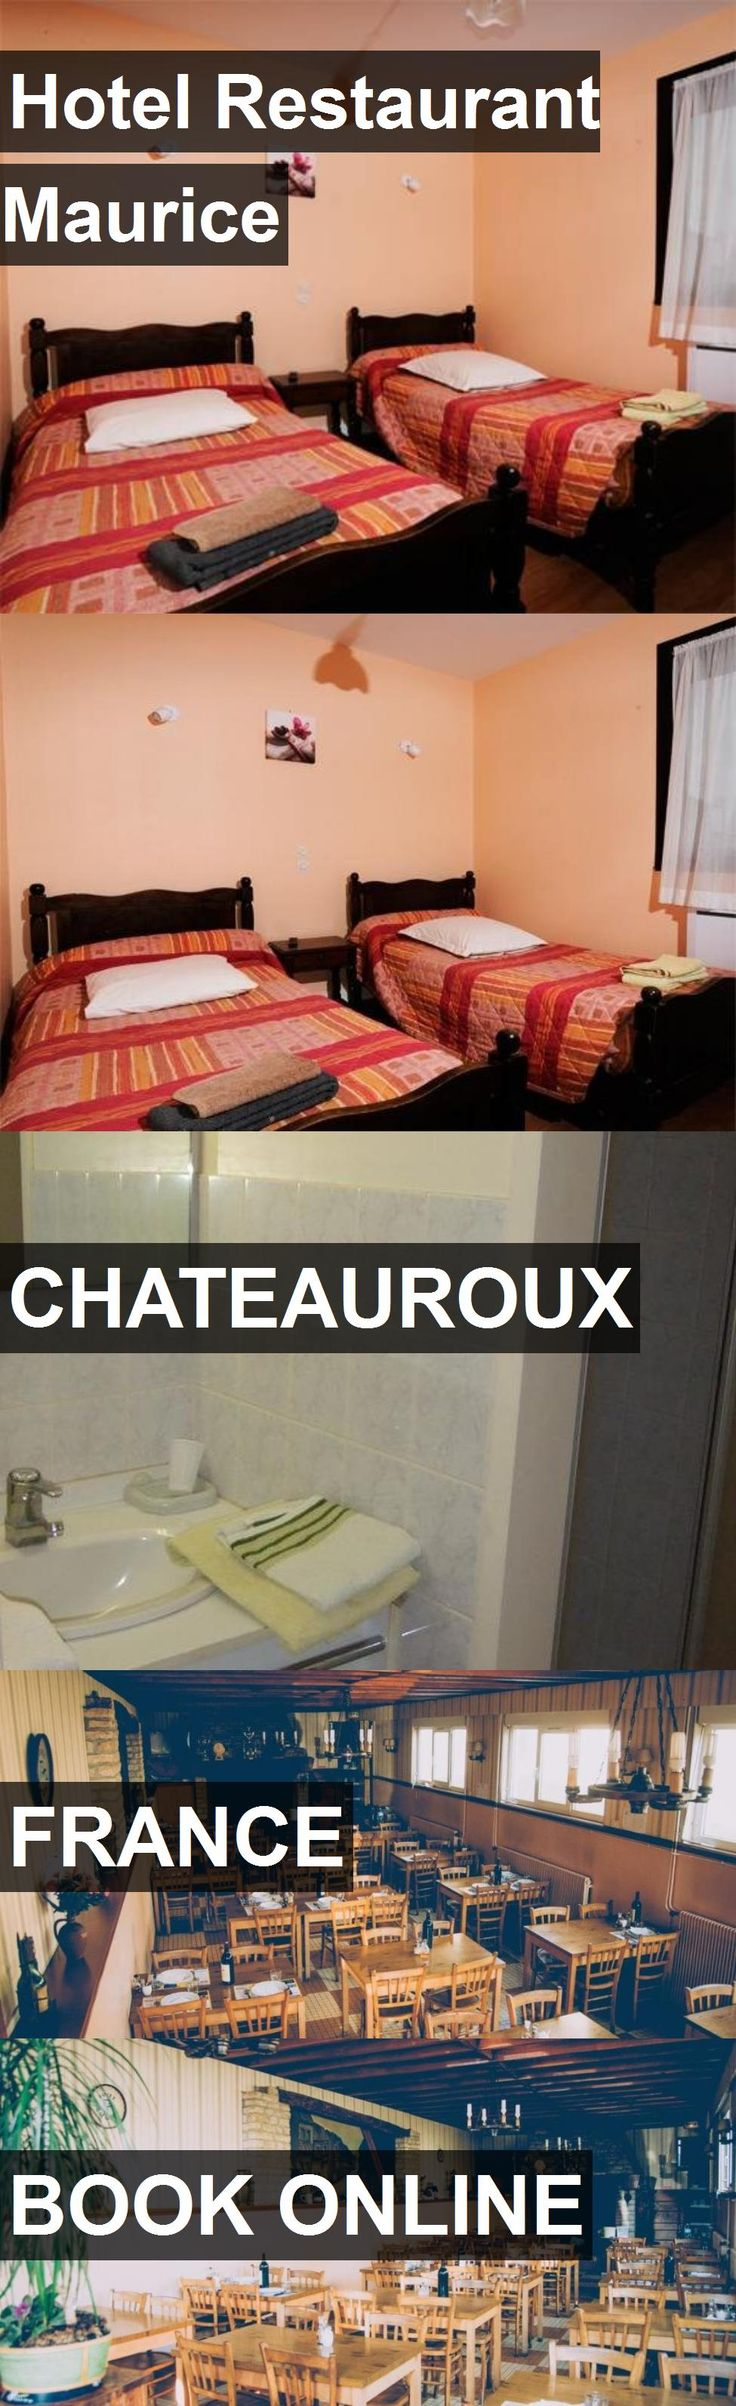 Hotel Hotel Restaurant Maurice in Chateauroux, France. For more information, photos, reviews and best prices please follow the link. #France #Chateauroux #HotelRestaurantMaurice #hotel #travel #vacation